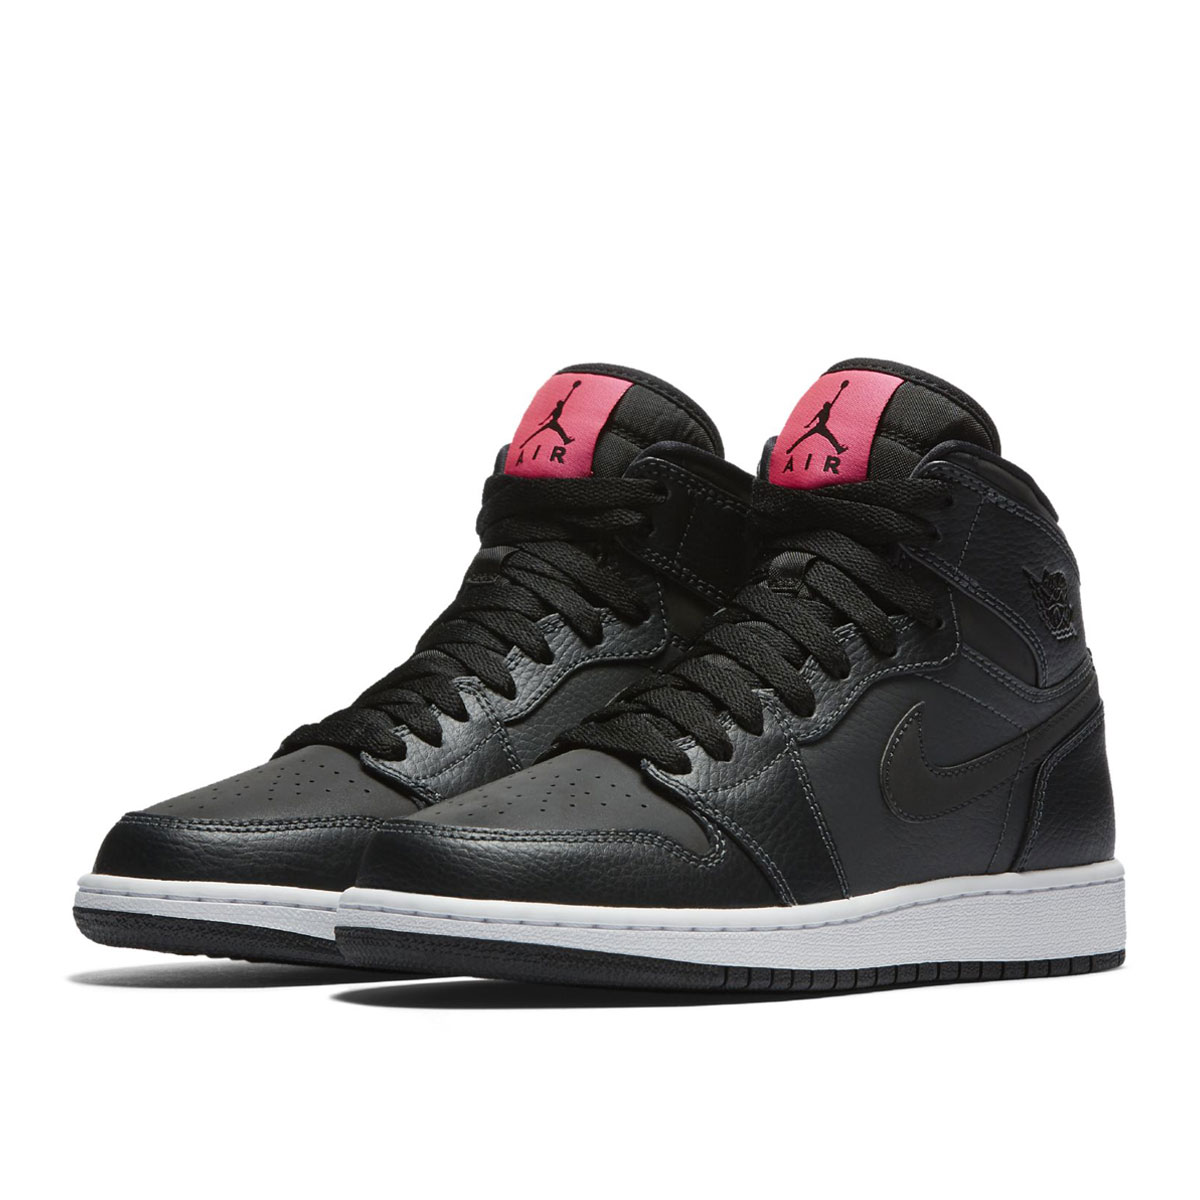 NIKE AIR JORDAN 1 RETRO HIGH GG (ナイキ エア ジョーダン 1 レトロ ハイ GG)ANTHRACITE/BLACK-BLACK-HYPER PINK-WHITE【レディース スニーカー】17SP-I